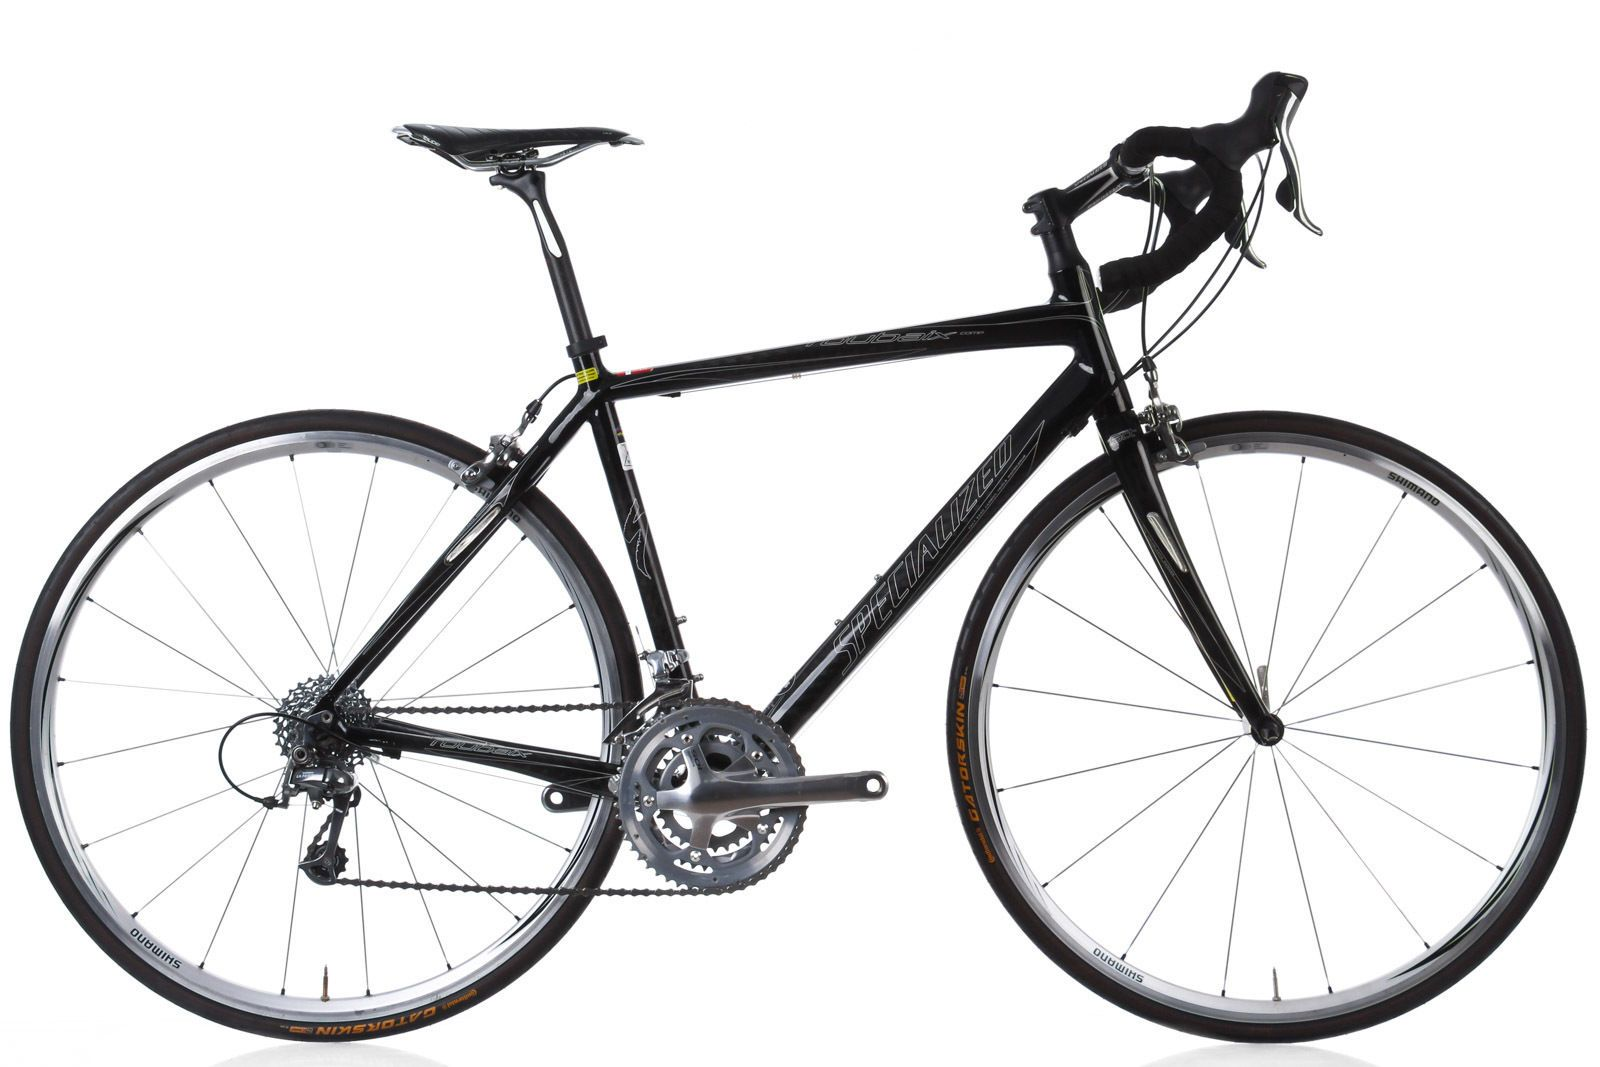 9c1683c7c54 2007 Specialized Roubaix Comp Road Bike 54cm MEDIUM Carbon Shimano Ultegra  - Easy Returns / 24 Hr Shipping / Satisfaction Guaranteed #carbon #shimano  ...